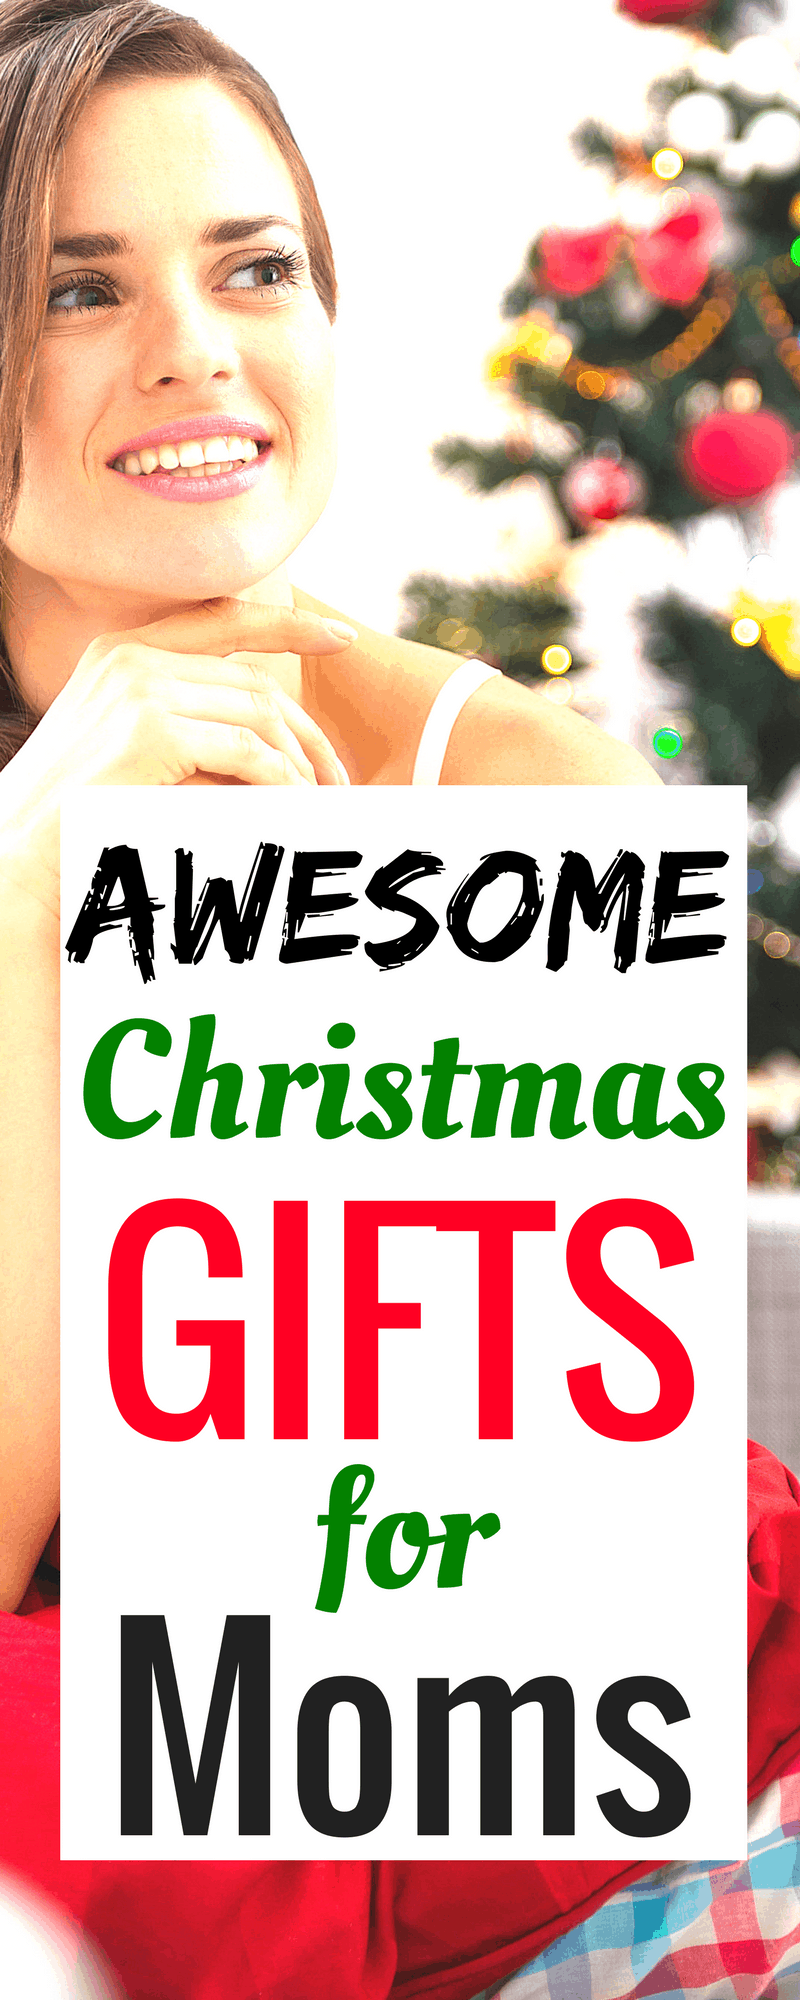 Awesome christmas gifts for moms Gifts for moms christmas 2017